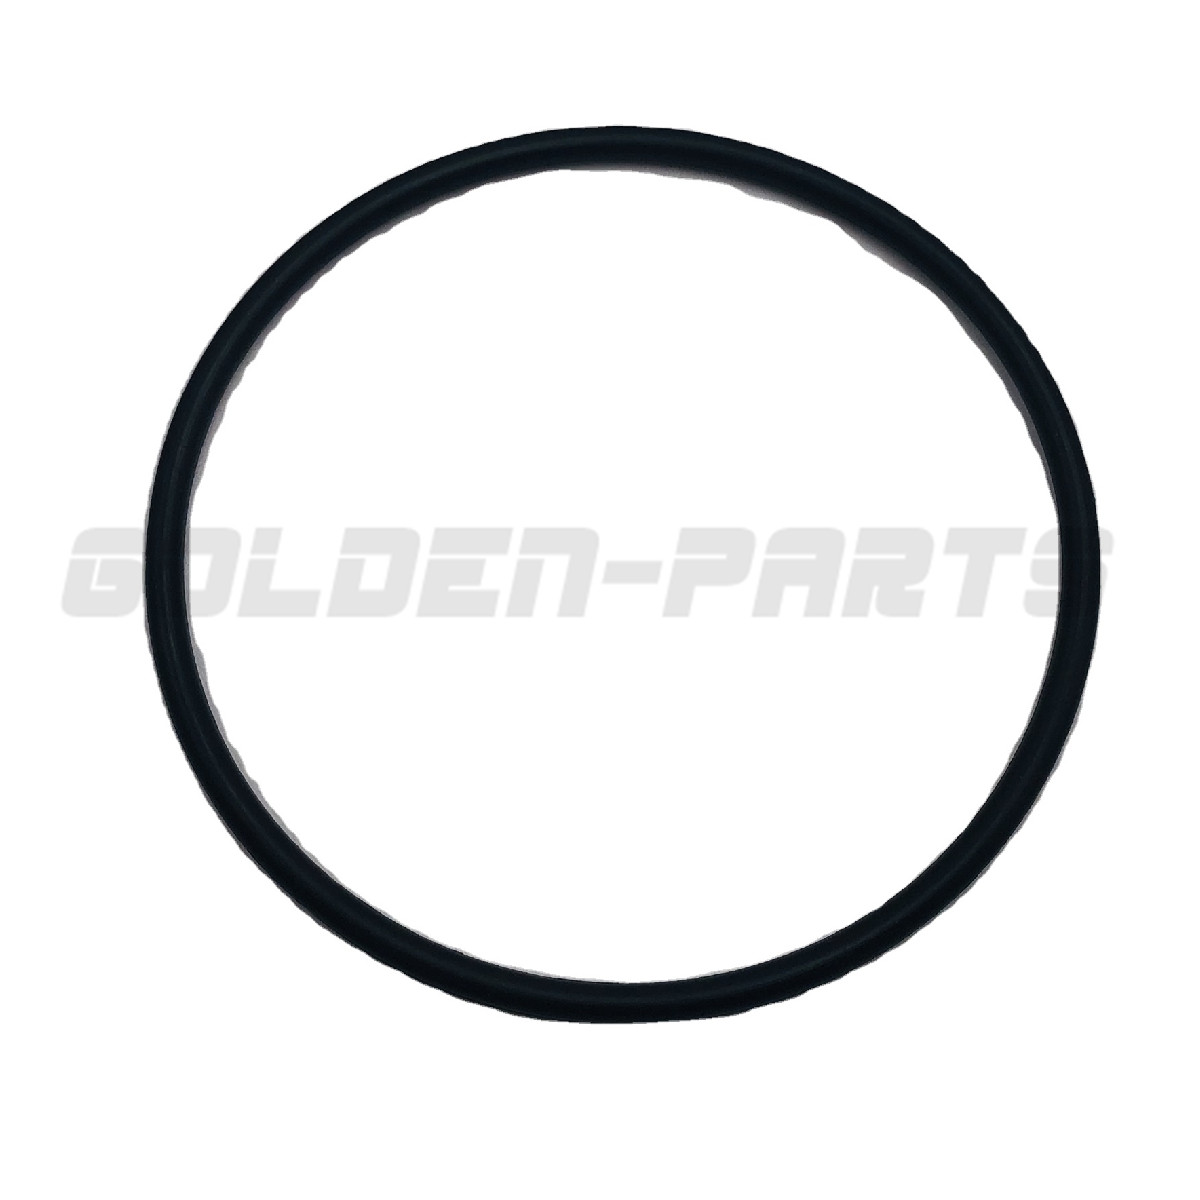 BRP Can am O-ring 60x2.5